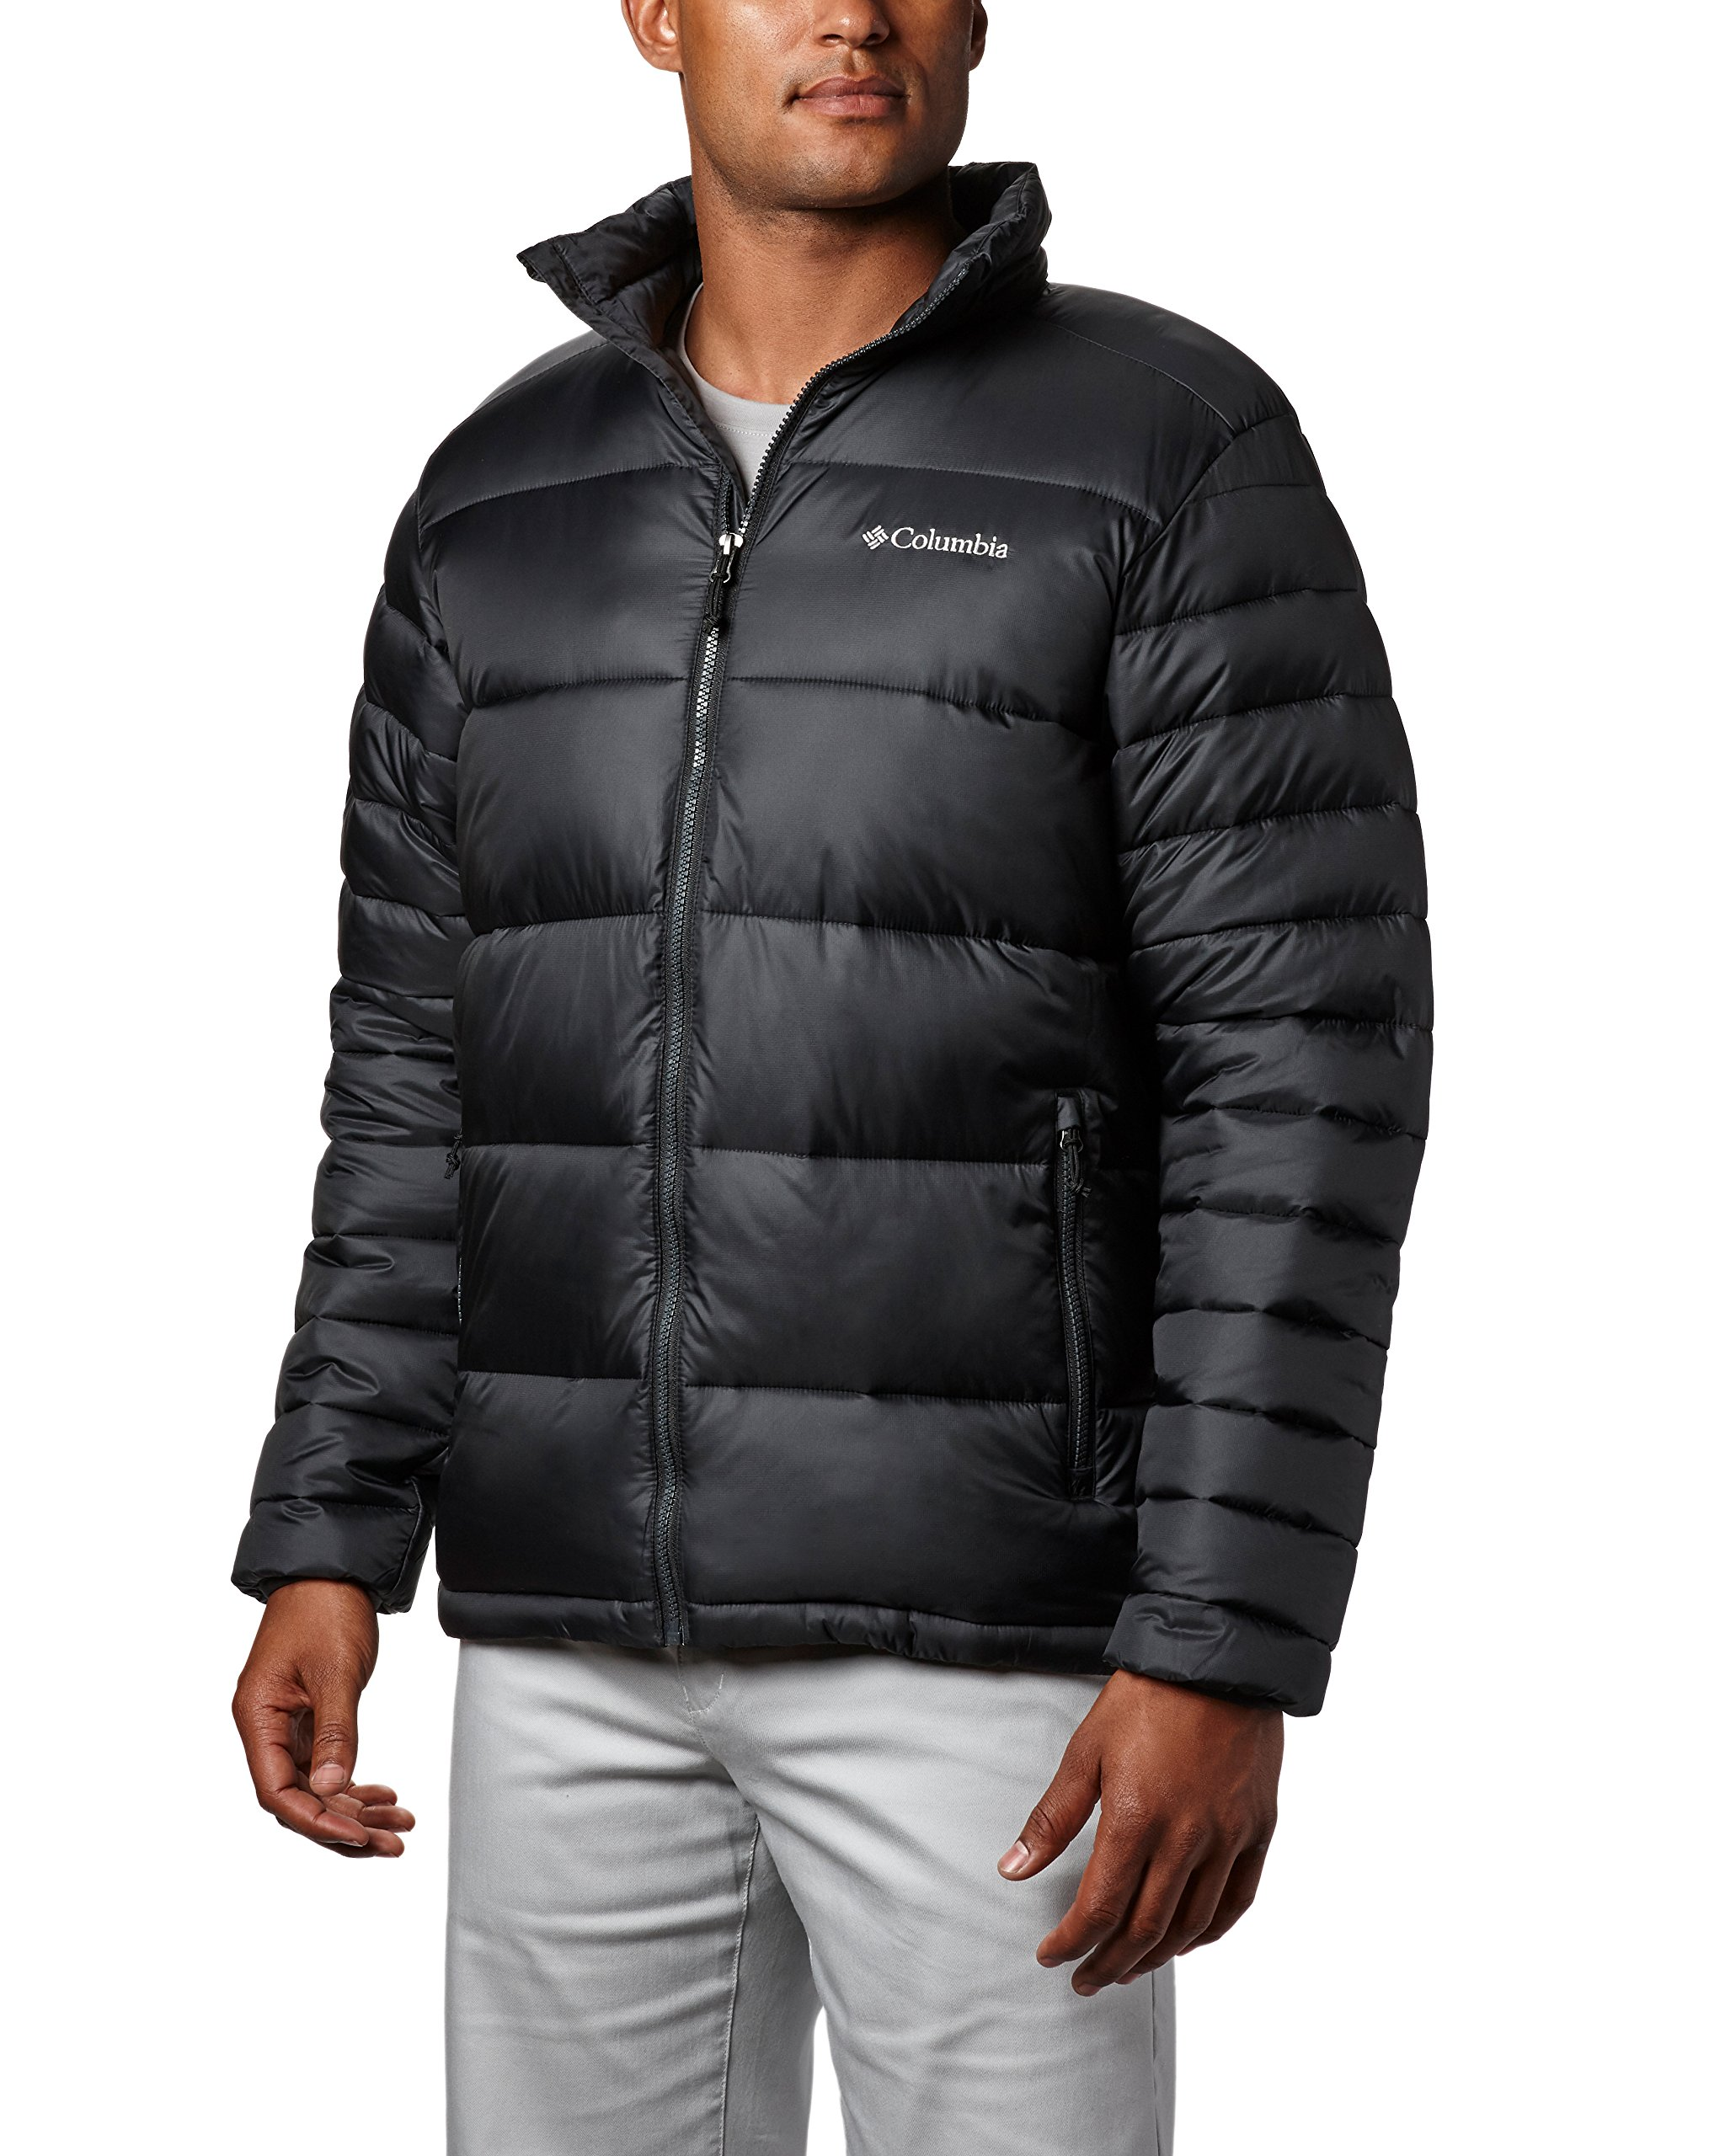 Columbia Men's Frost Fighter Insulated Warm Puffer Jacket, black, S by Columbia